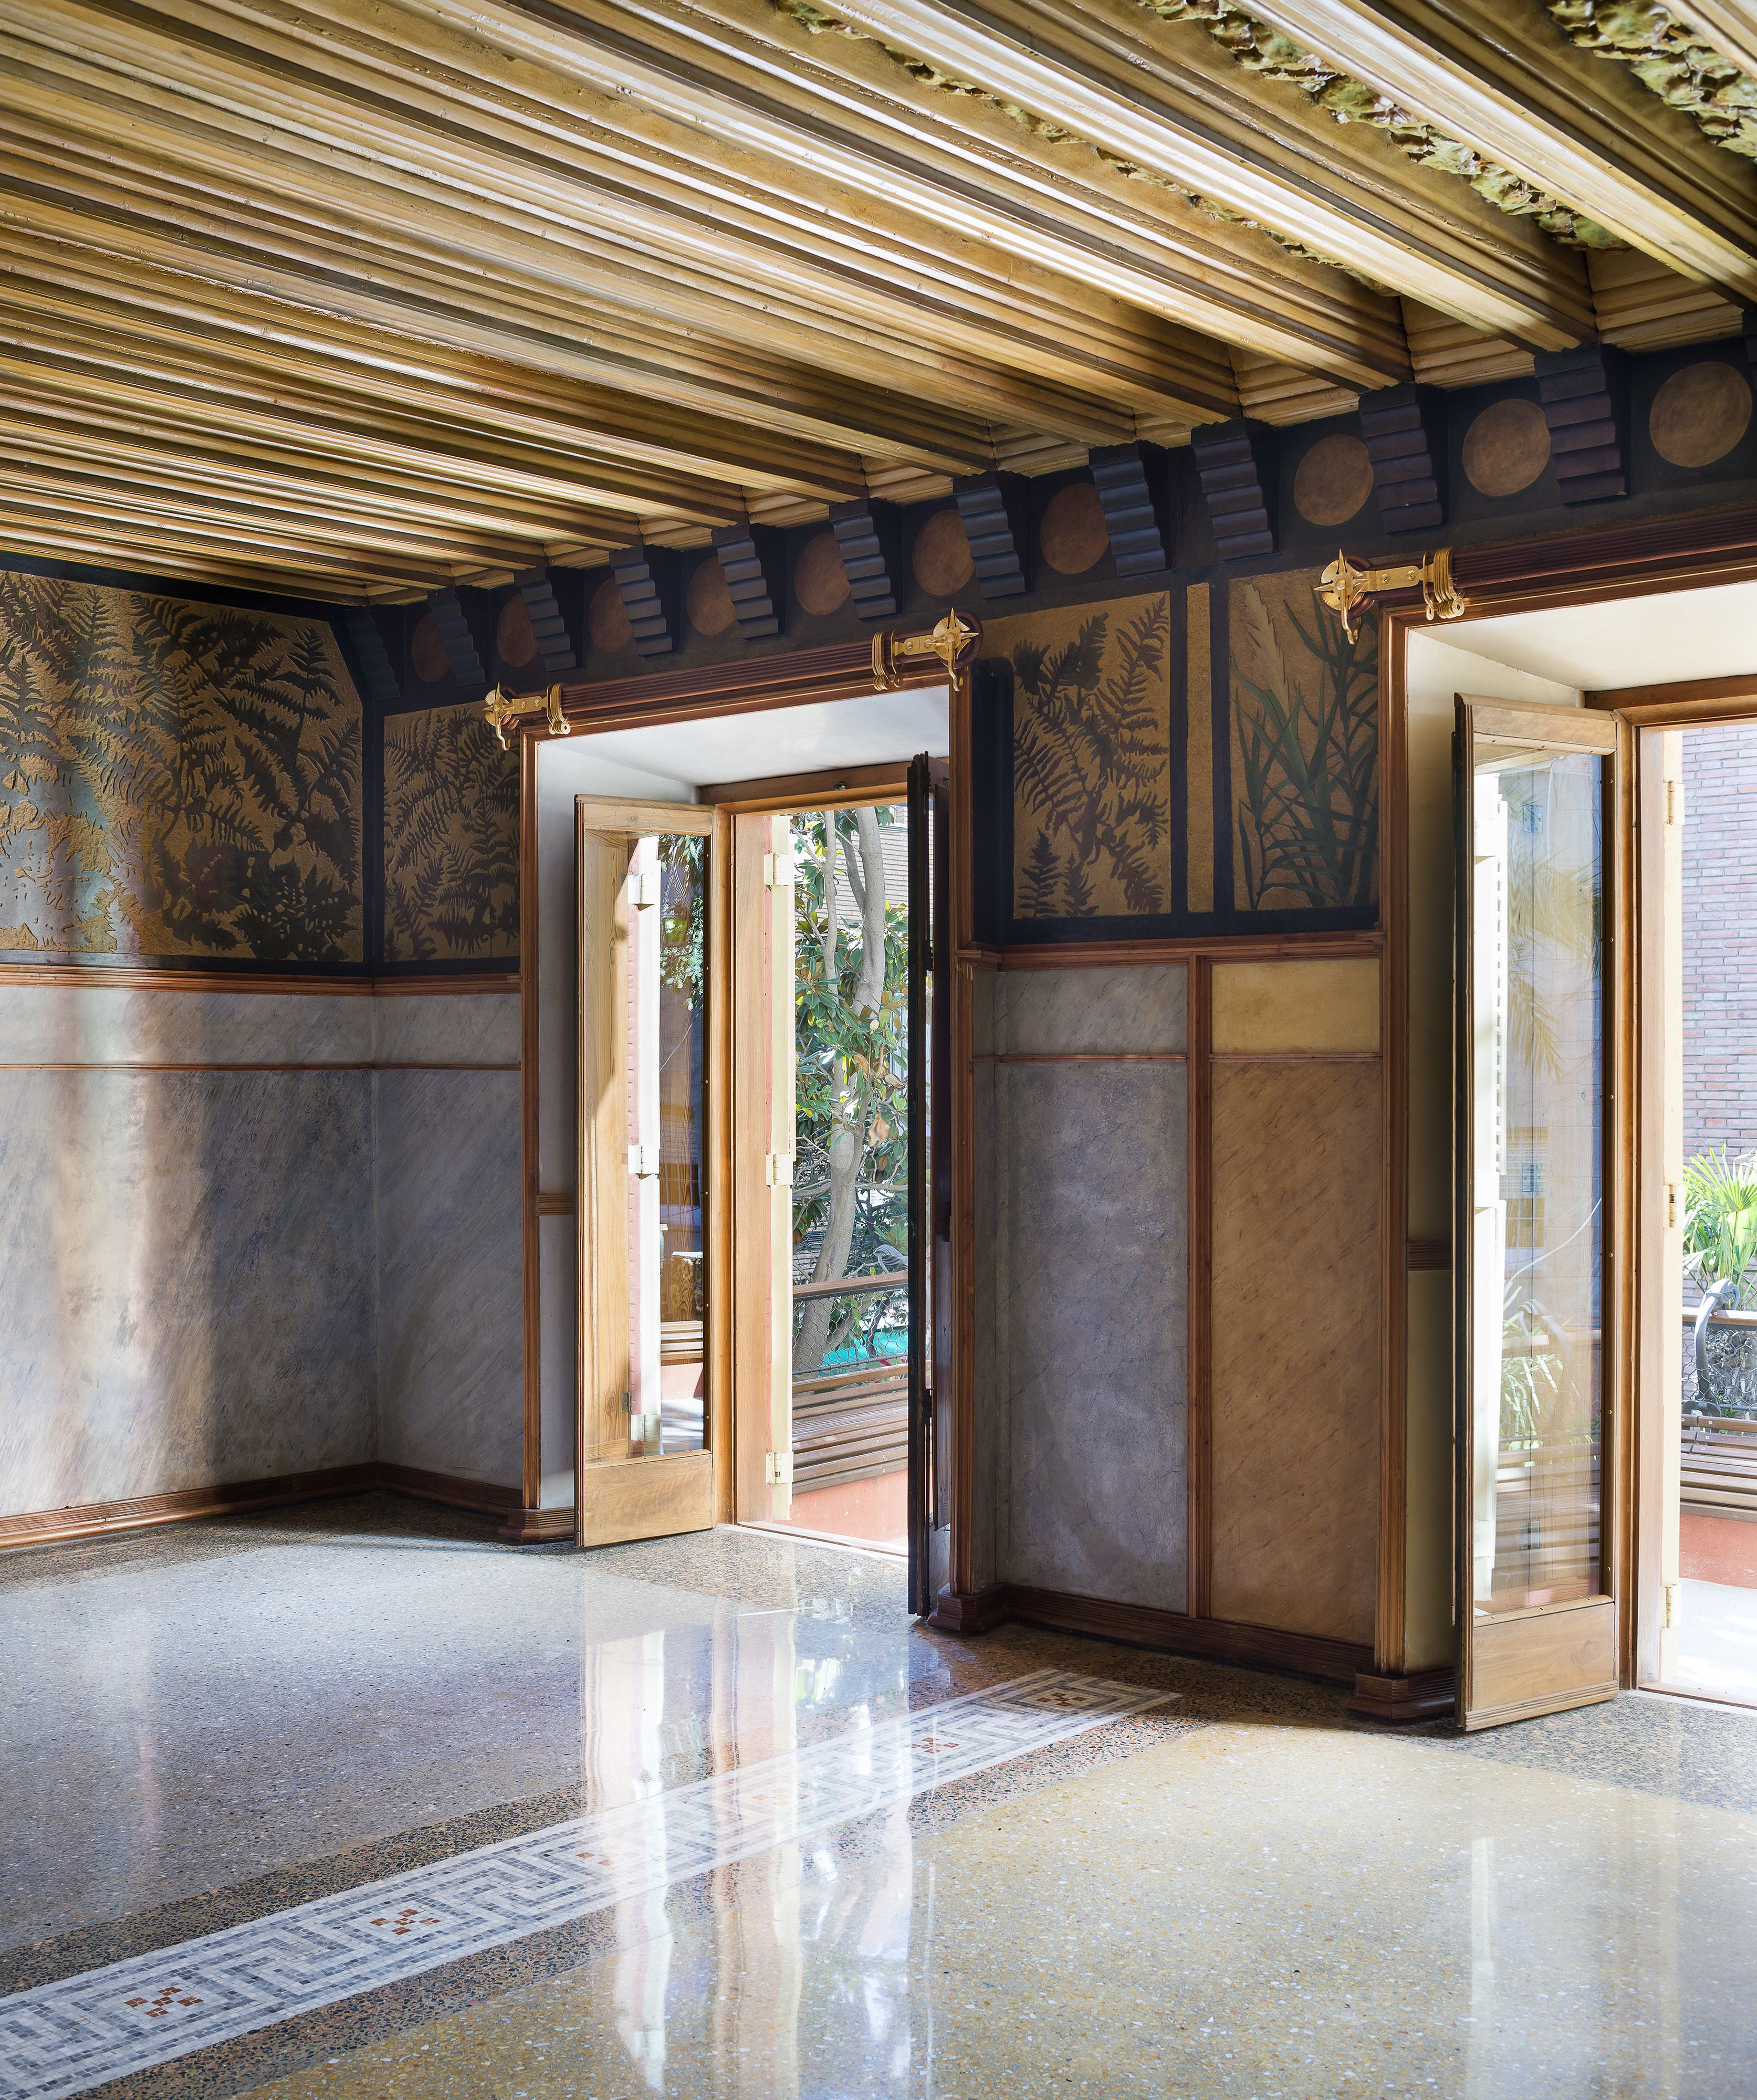 Gaud S Fantastic Casa Vicens Opens To The Public For The First  # Muebles Gaudi Guadalajara